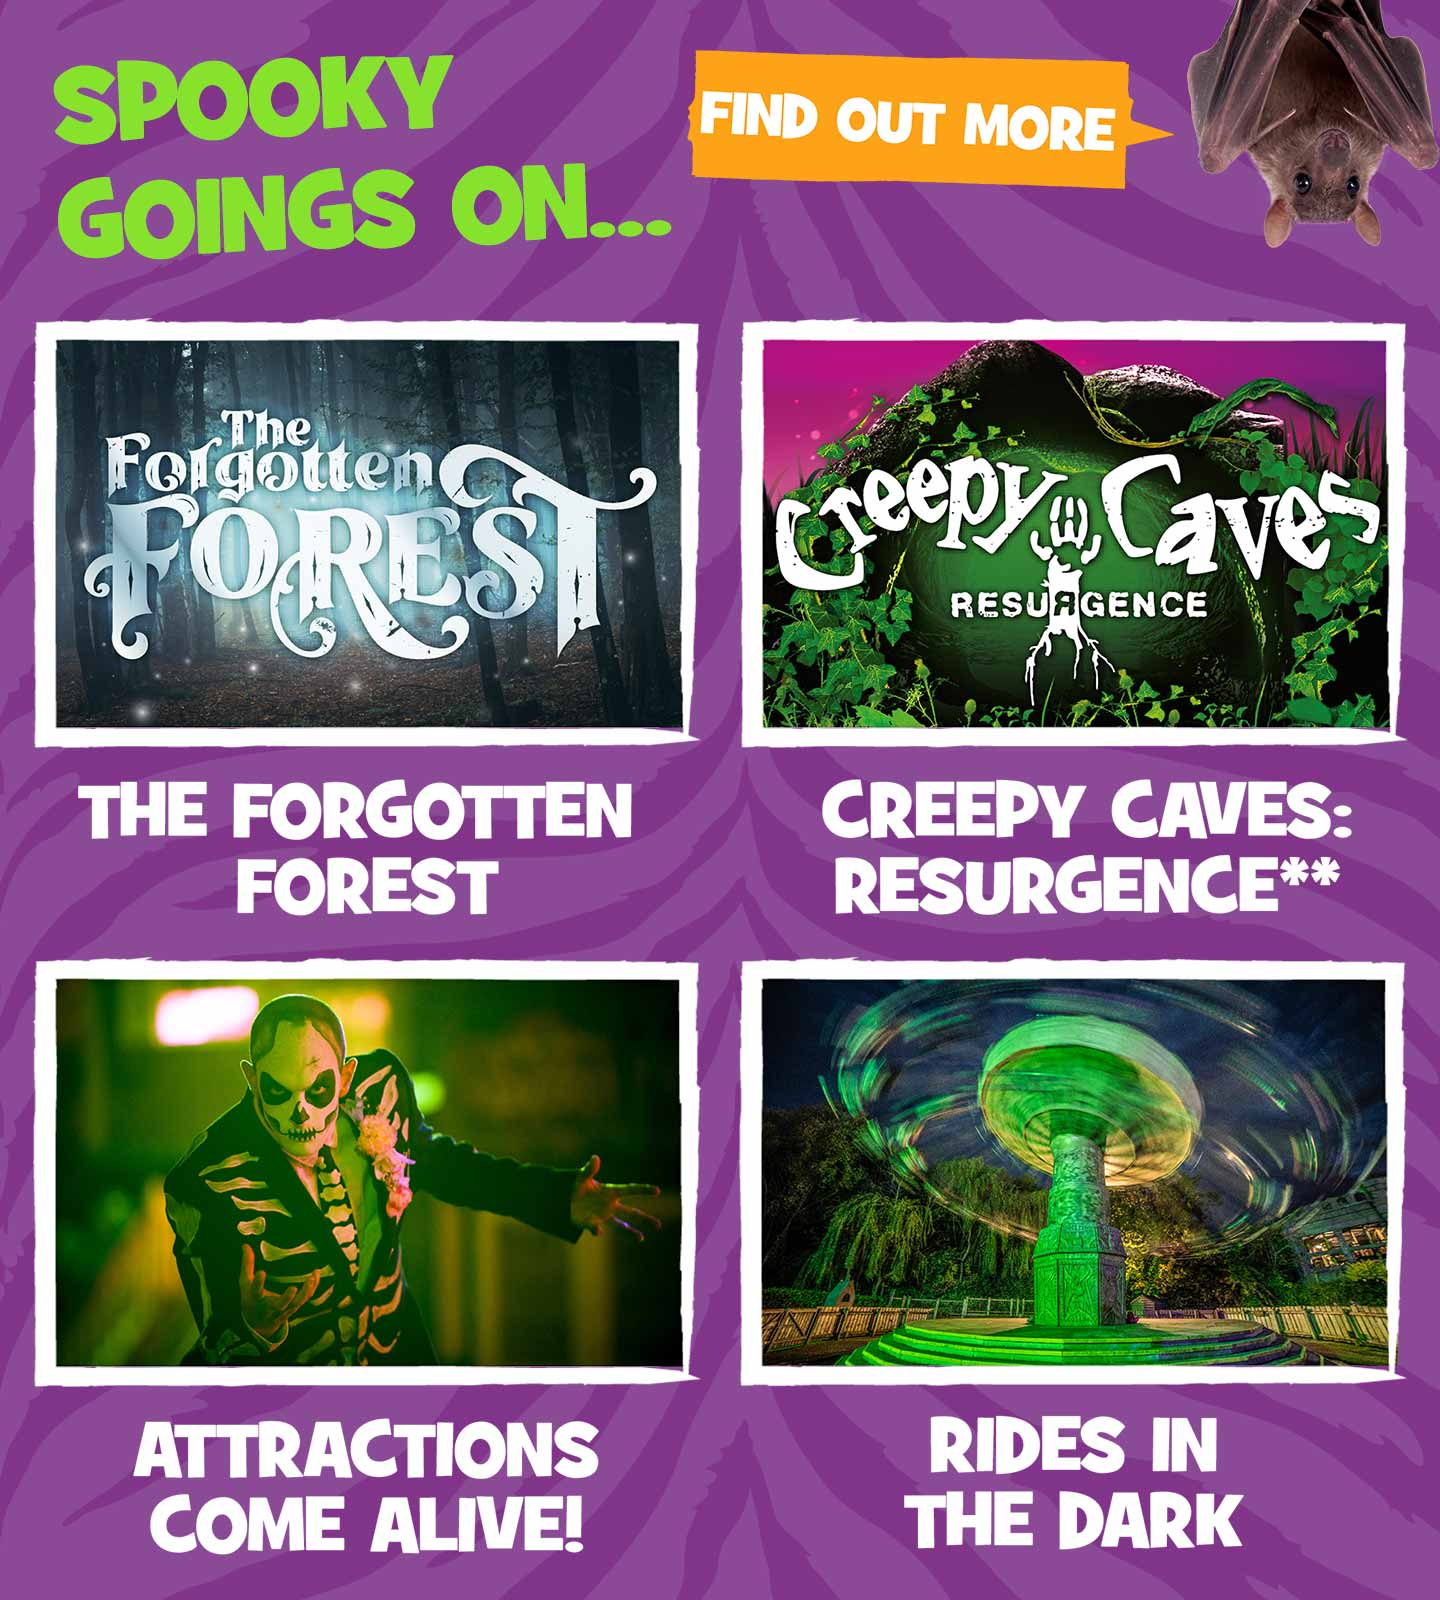 Spooky attractions at Chessington Resort